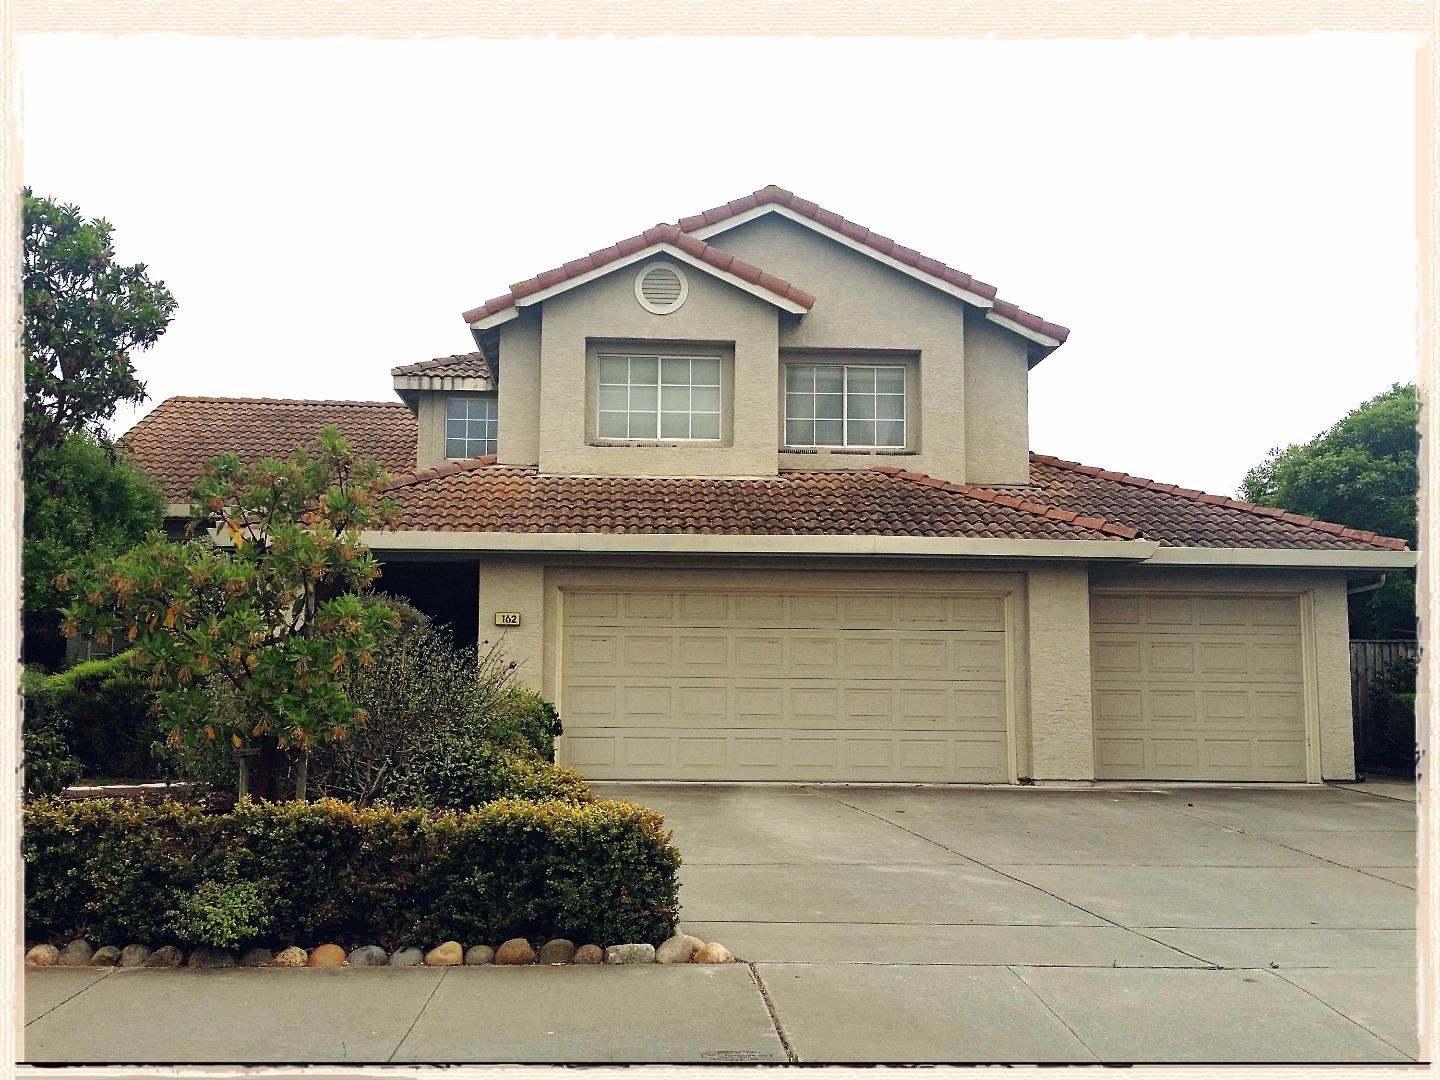 Single Family Home for Sale at 162 Pacific Court Marina, California 93933 United States